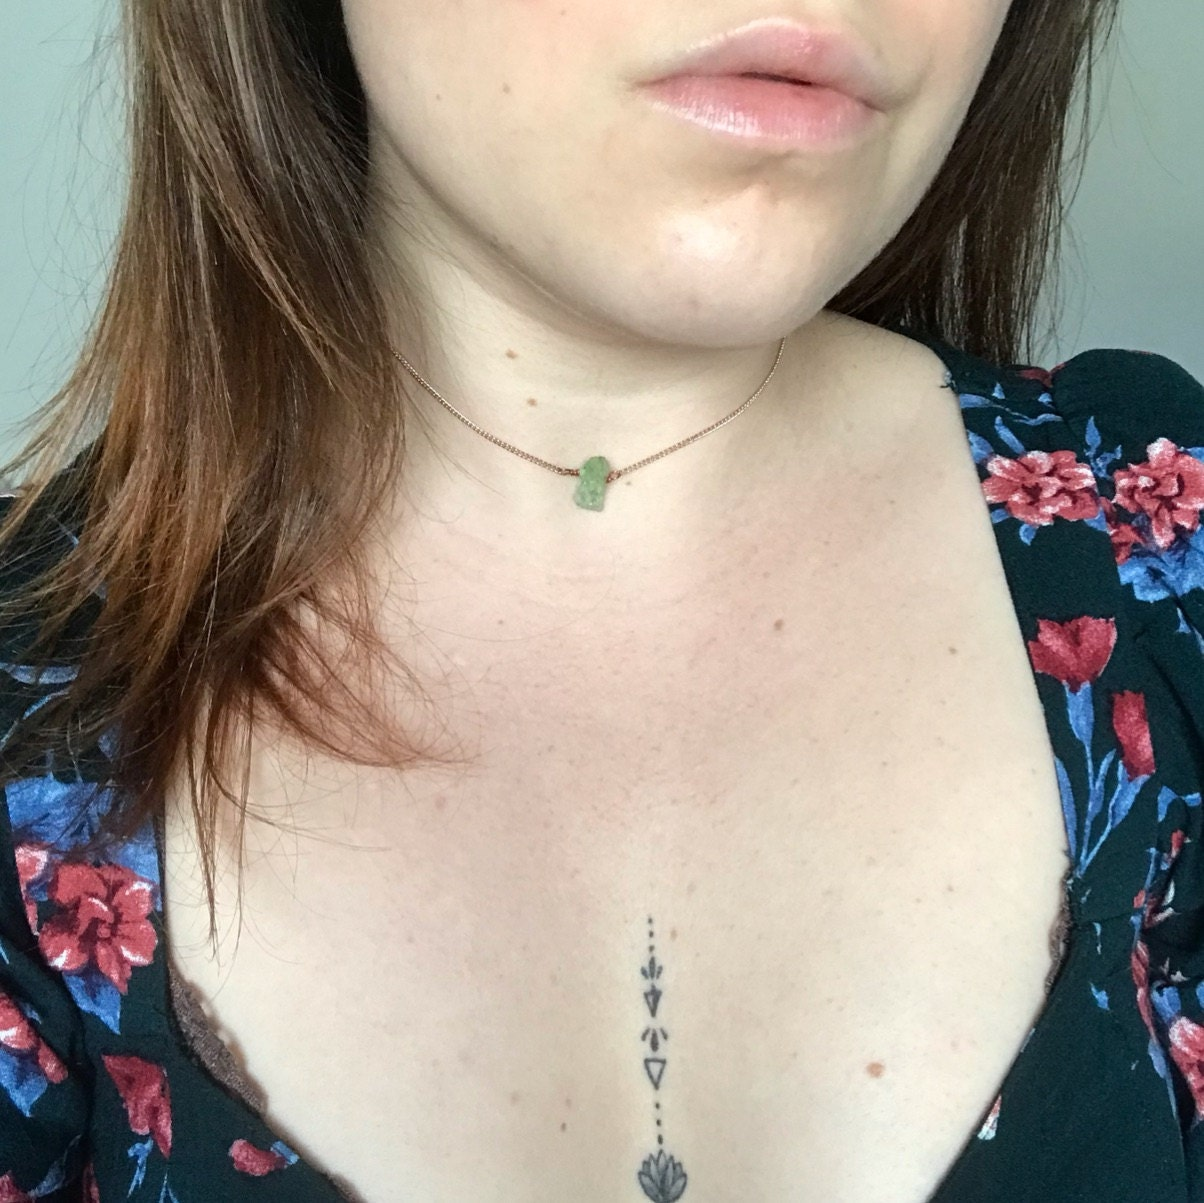 paige719 added a photo of their purchase